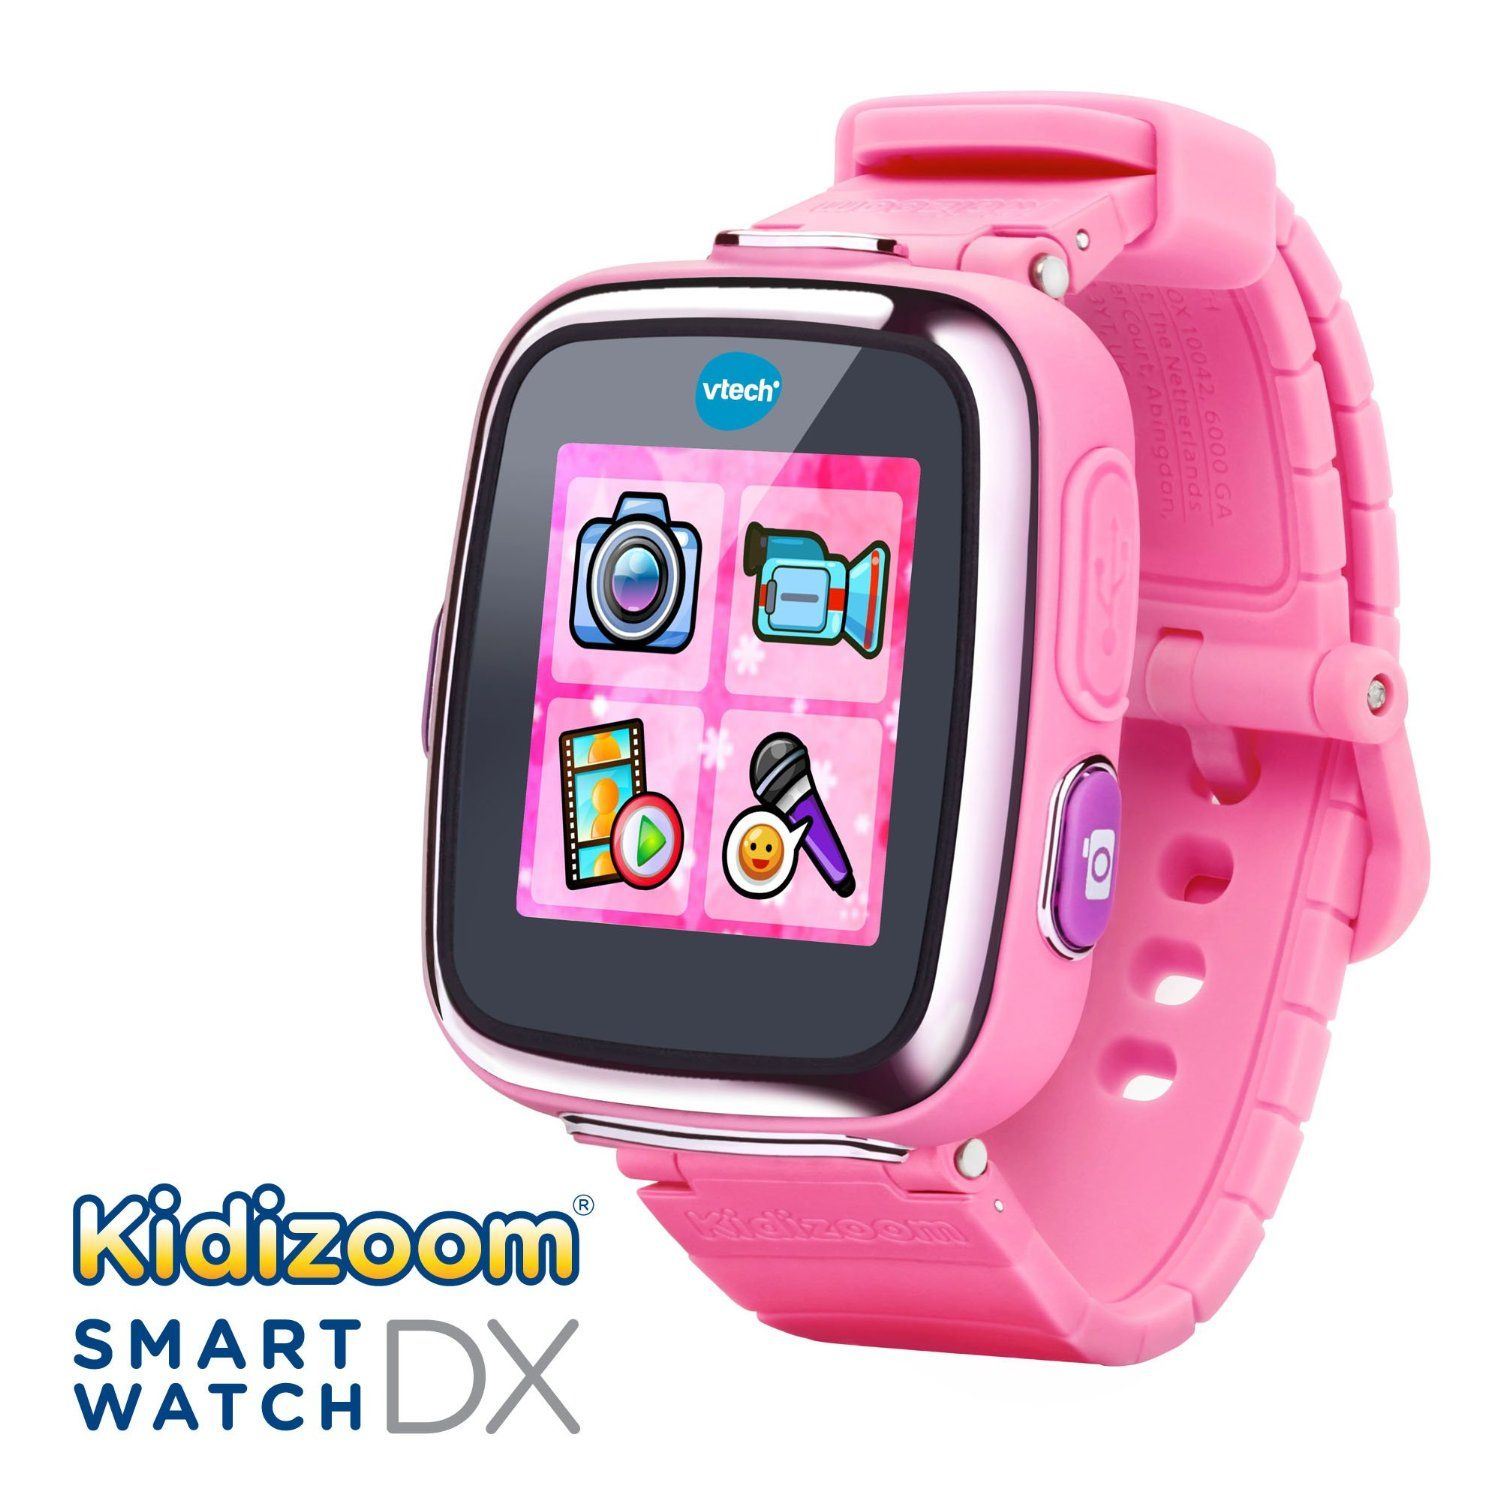 Amazoncom Vtech Kidizoom Smartwatch Dx Pink Online Exclusive Faultfinder Short Open Circuit Finder And Tracer 6 To 42 Toys Amp